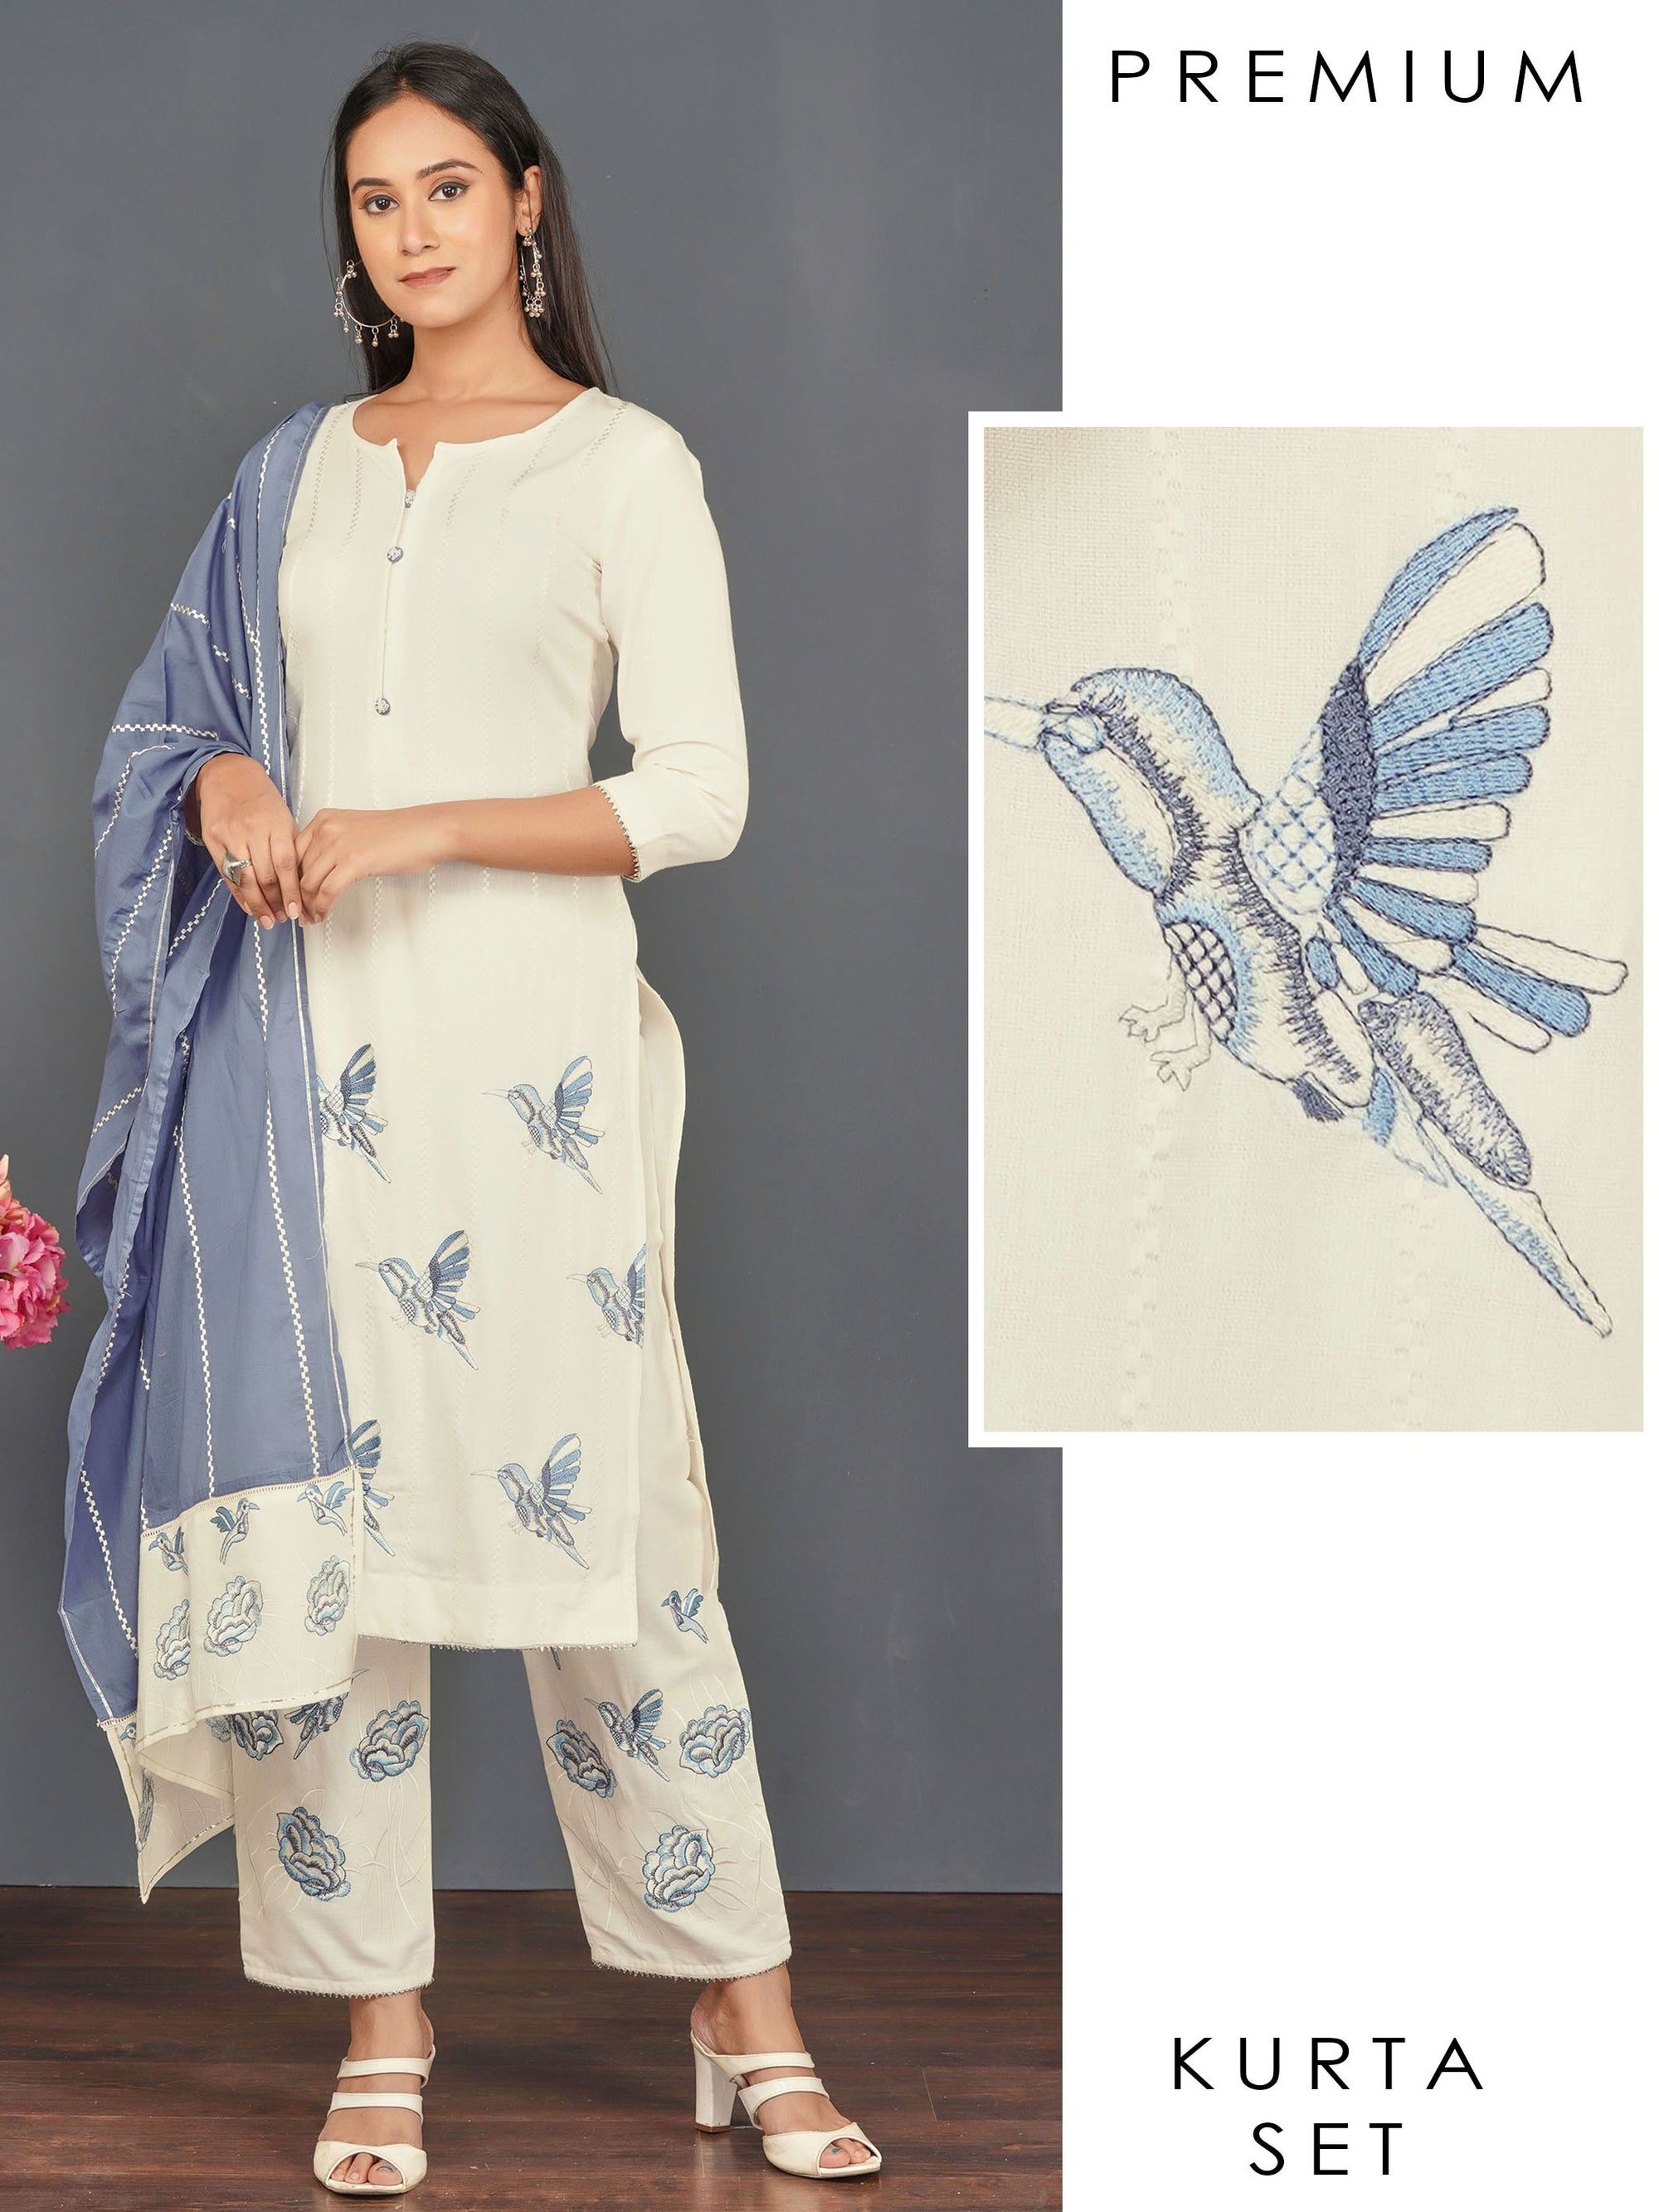 Bird Embroidered Kurti, Floral Embroidered Pant & Dupatta Set – Off-White